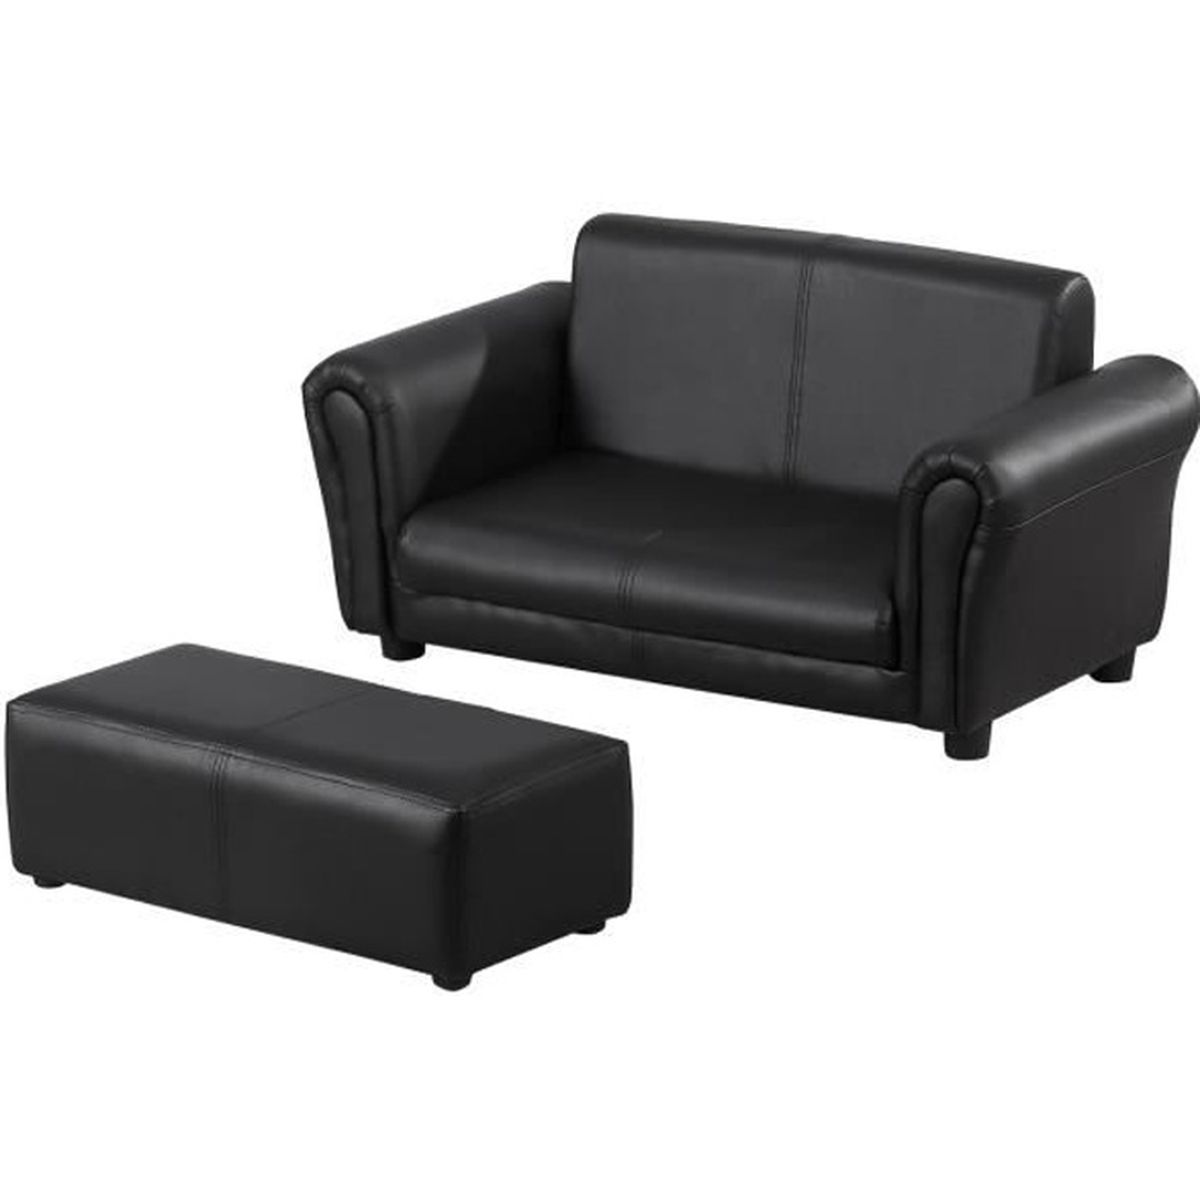 canap fauteuil canape club protege lit place stressless himolla cuir et center but ensemble. Black Bedroom Furniture Sets. Home Design Ideas